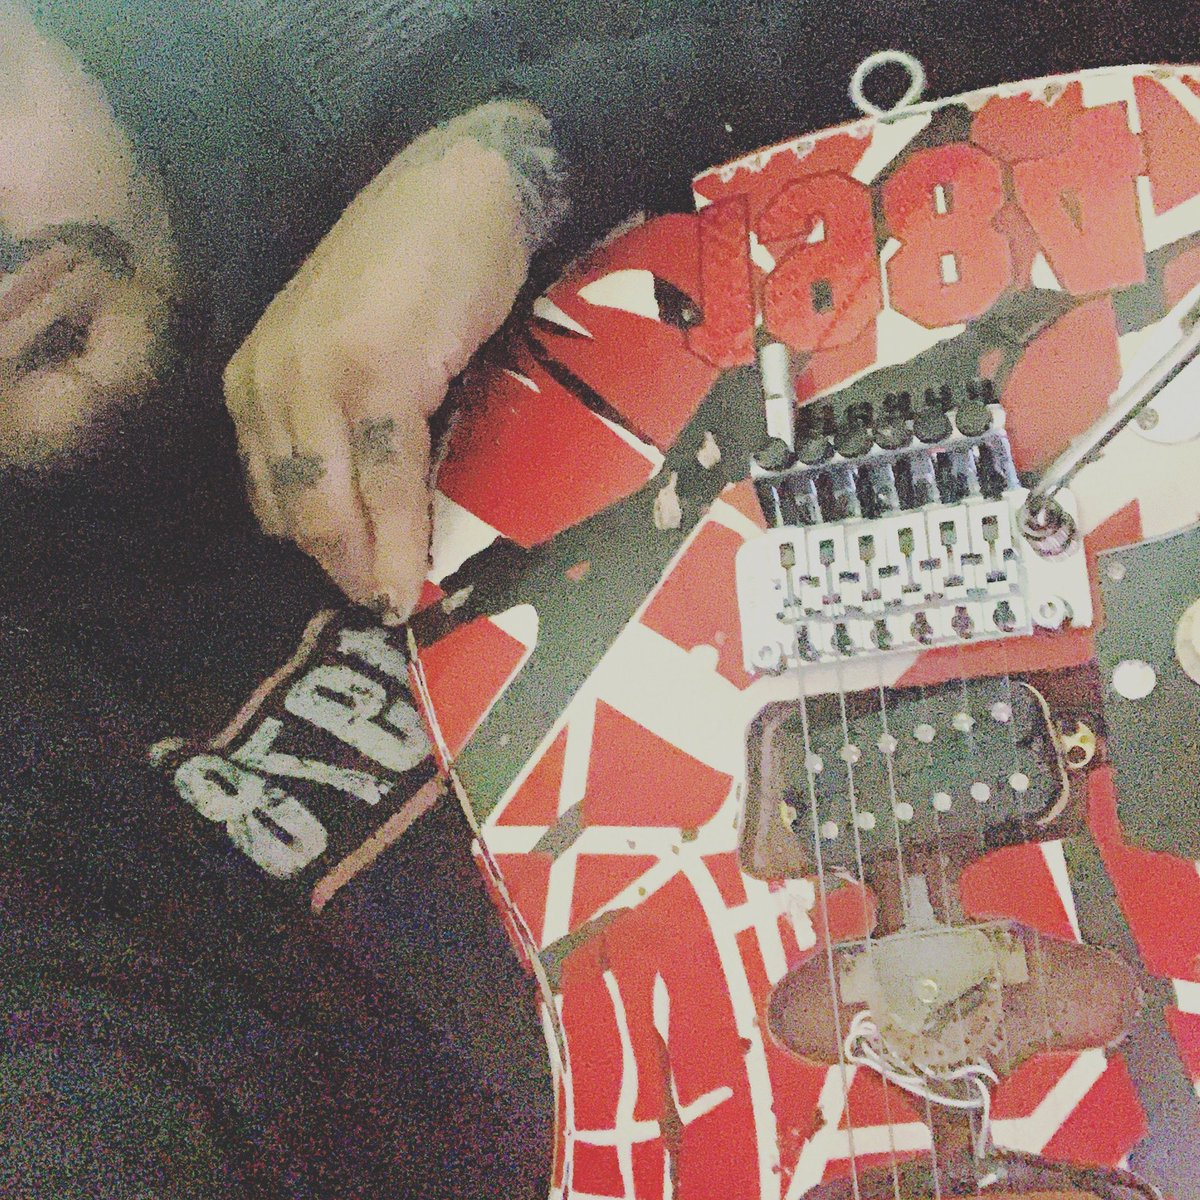 @WolfVanHalen @evhgear THIS guitar has brought me so much comfort and elevation and tears , iv cried and bellowed holding this , and Ive smiled with tears thank I #vanhalenfamily for all you've created!!!! #themightyvanhalen  #evhfrankierelic